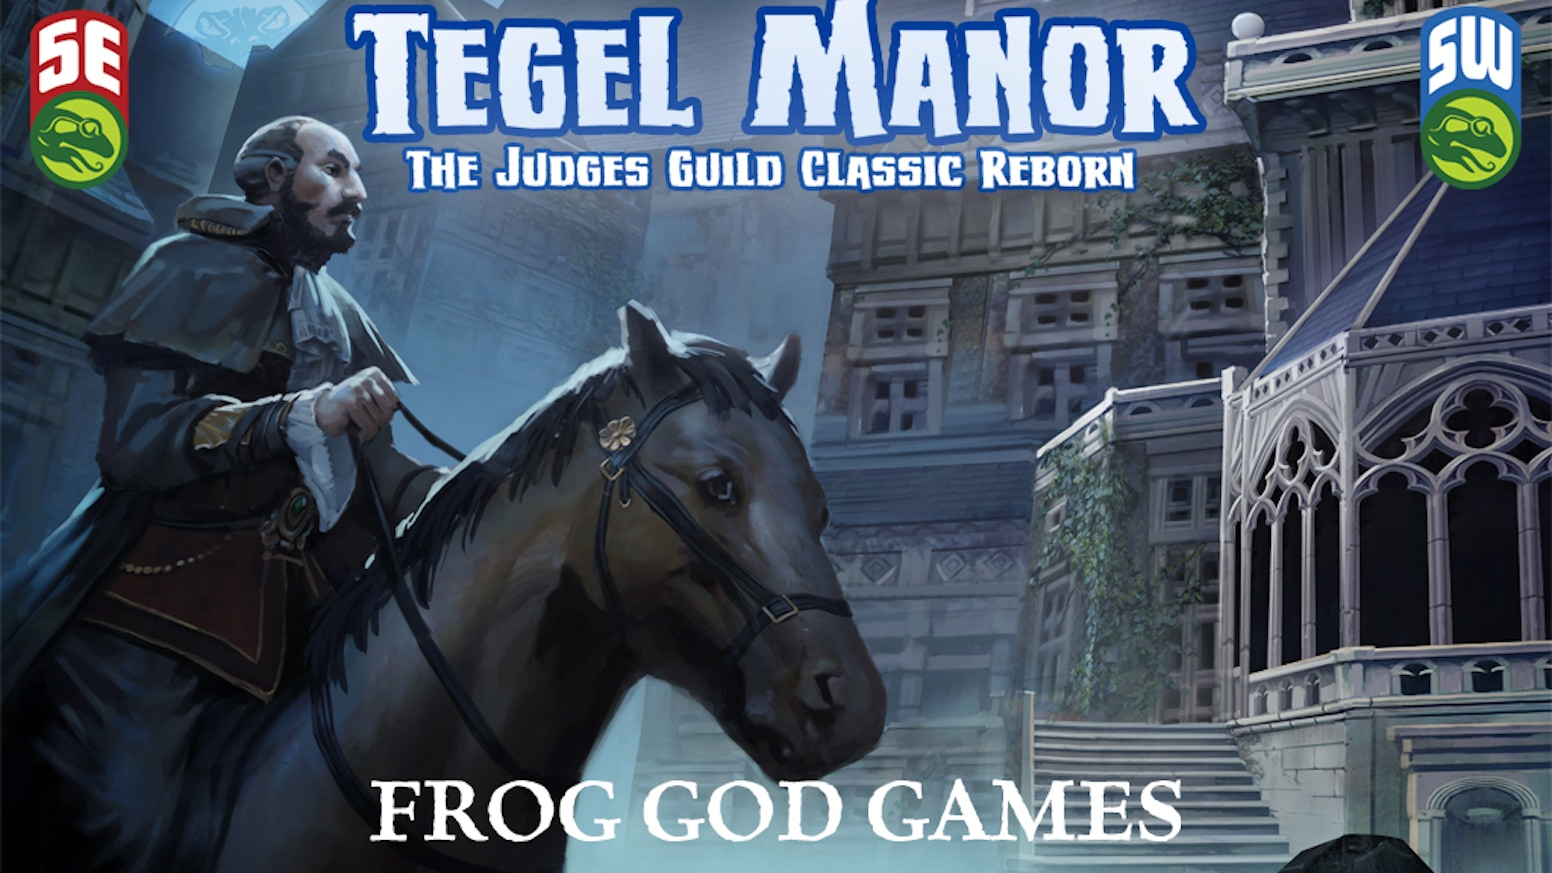 Tegel Manor Returns! by Frog God Games — Kickstarter